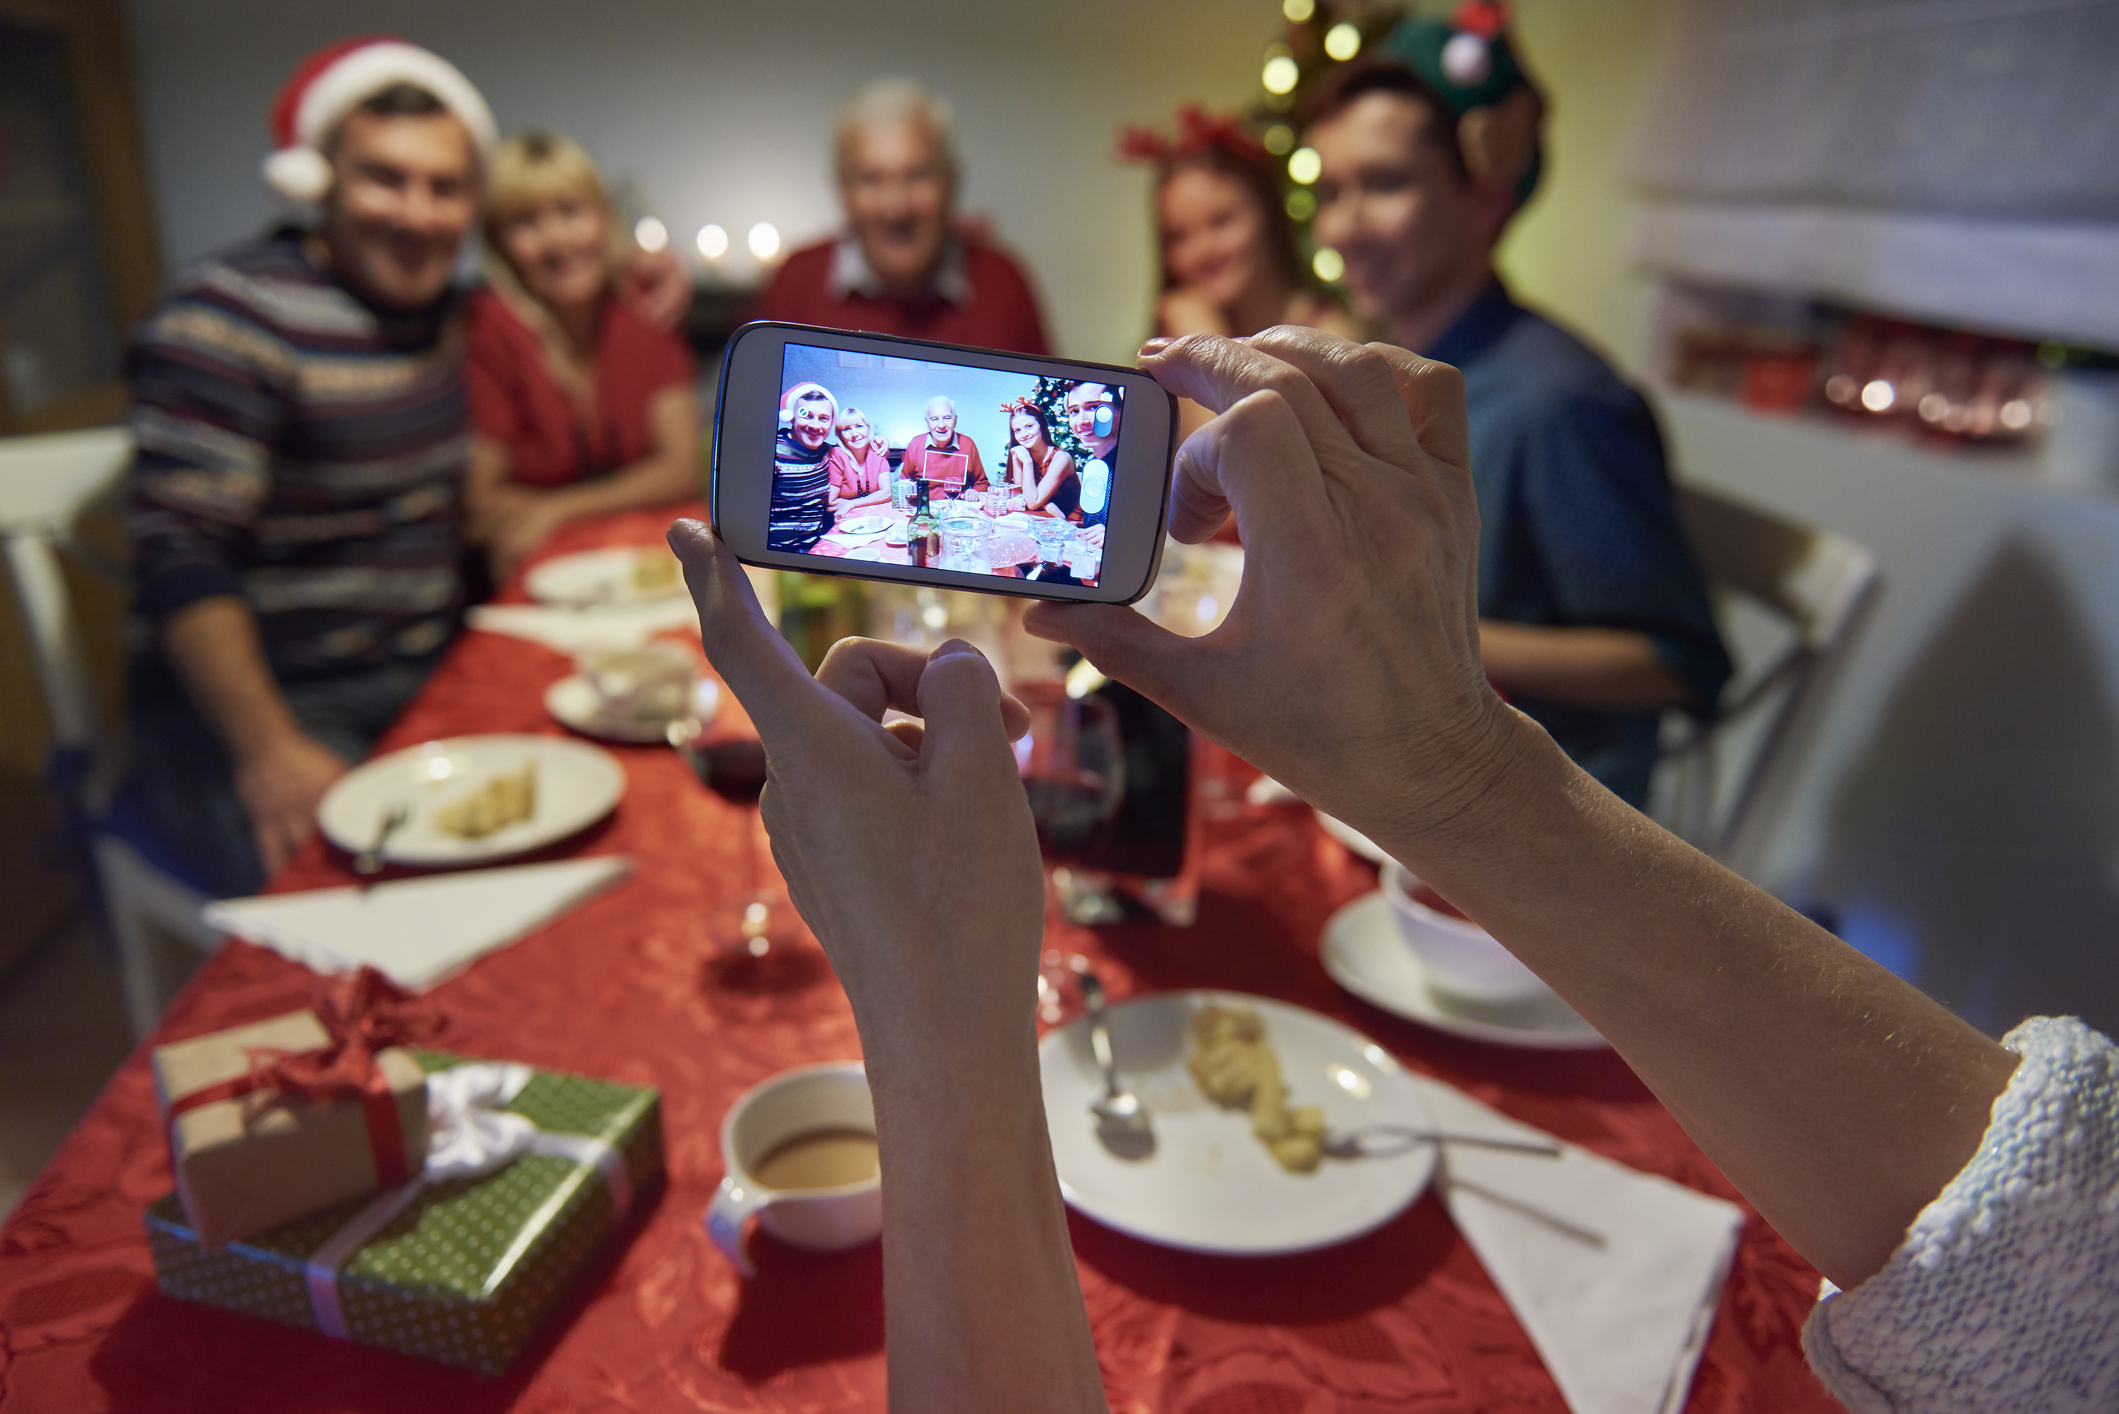 Making Memorable Videos With Your Smartphone During The Holiday Season preview image